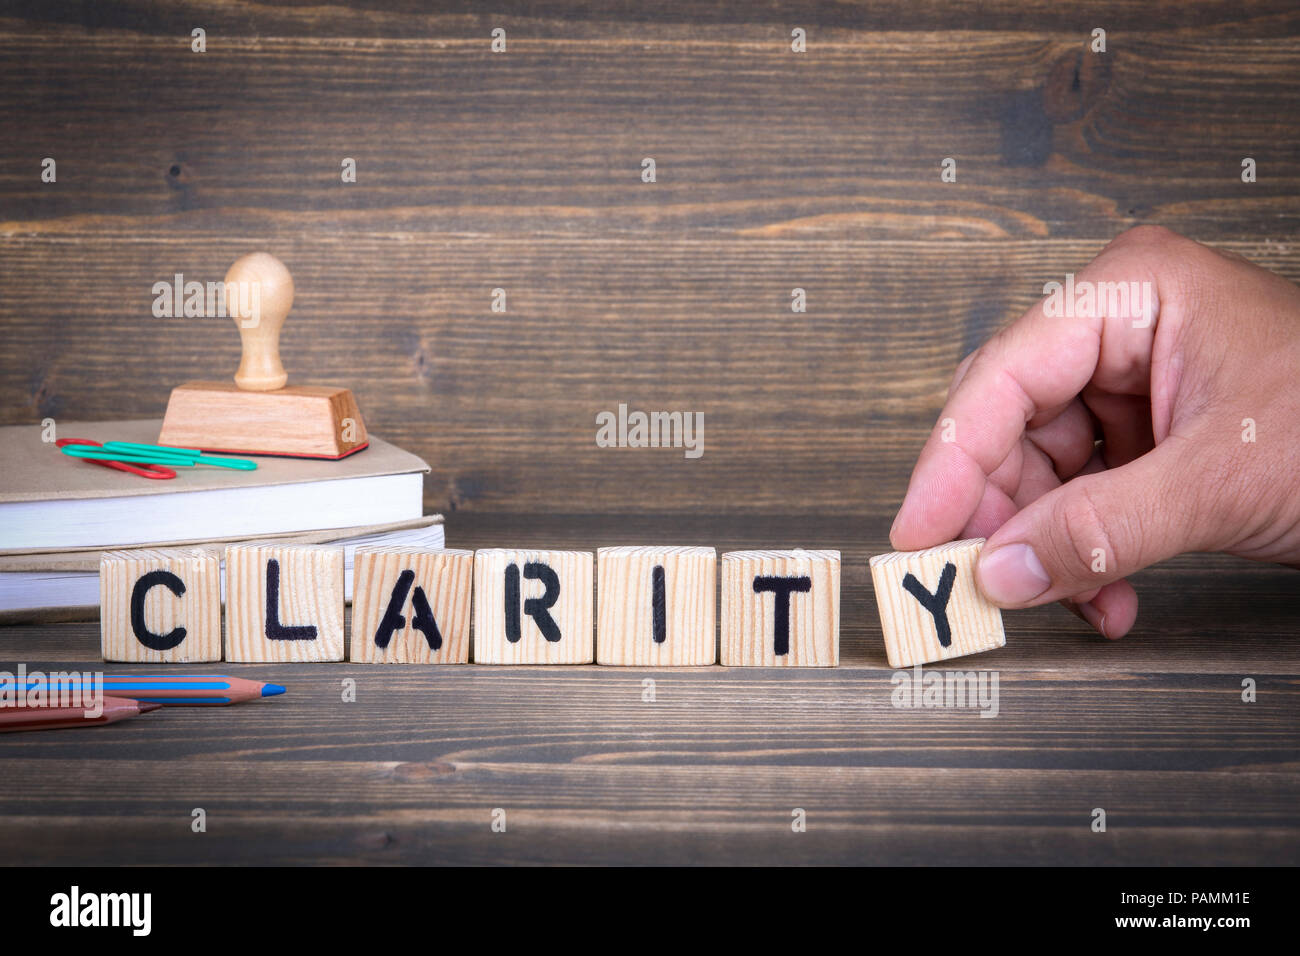 Clarity. Wooden letters on the office desk - Stock Image